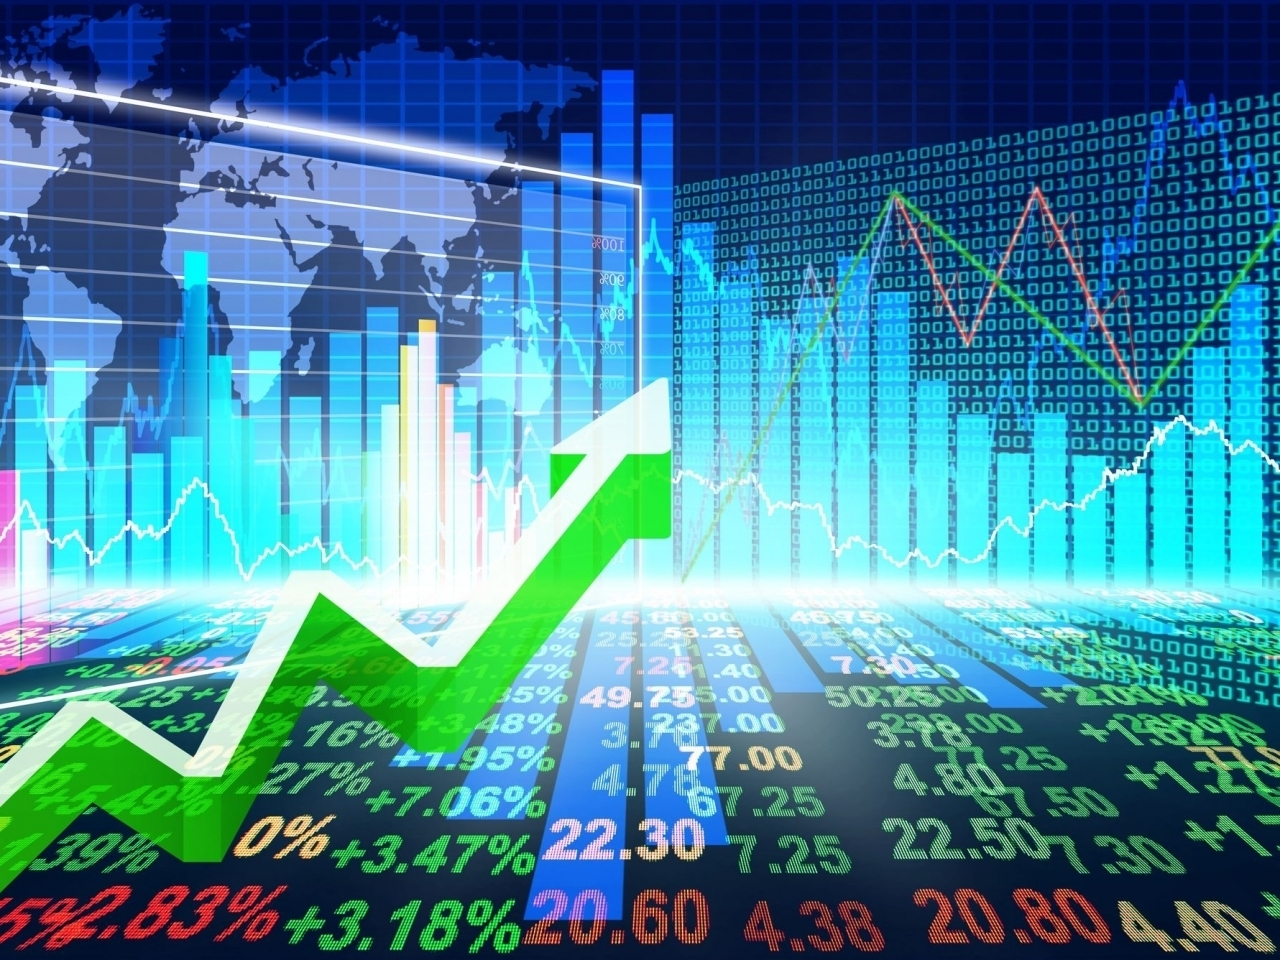 The Hang Seng Index climbed 1.9 percent, or 489 points, to 26,205. Image: Shutterstock